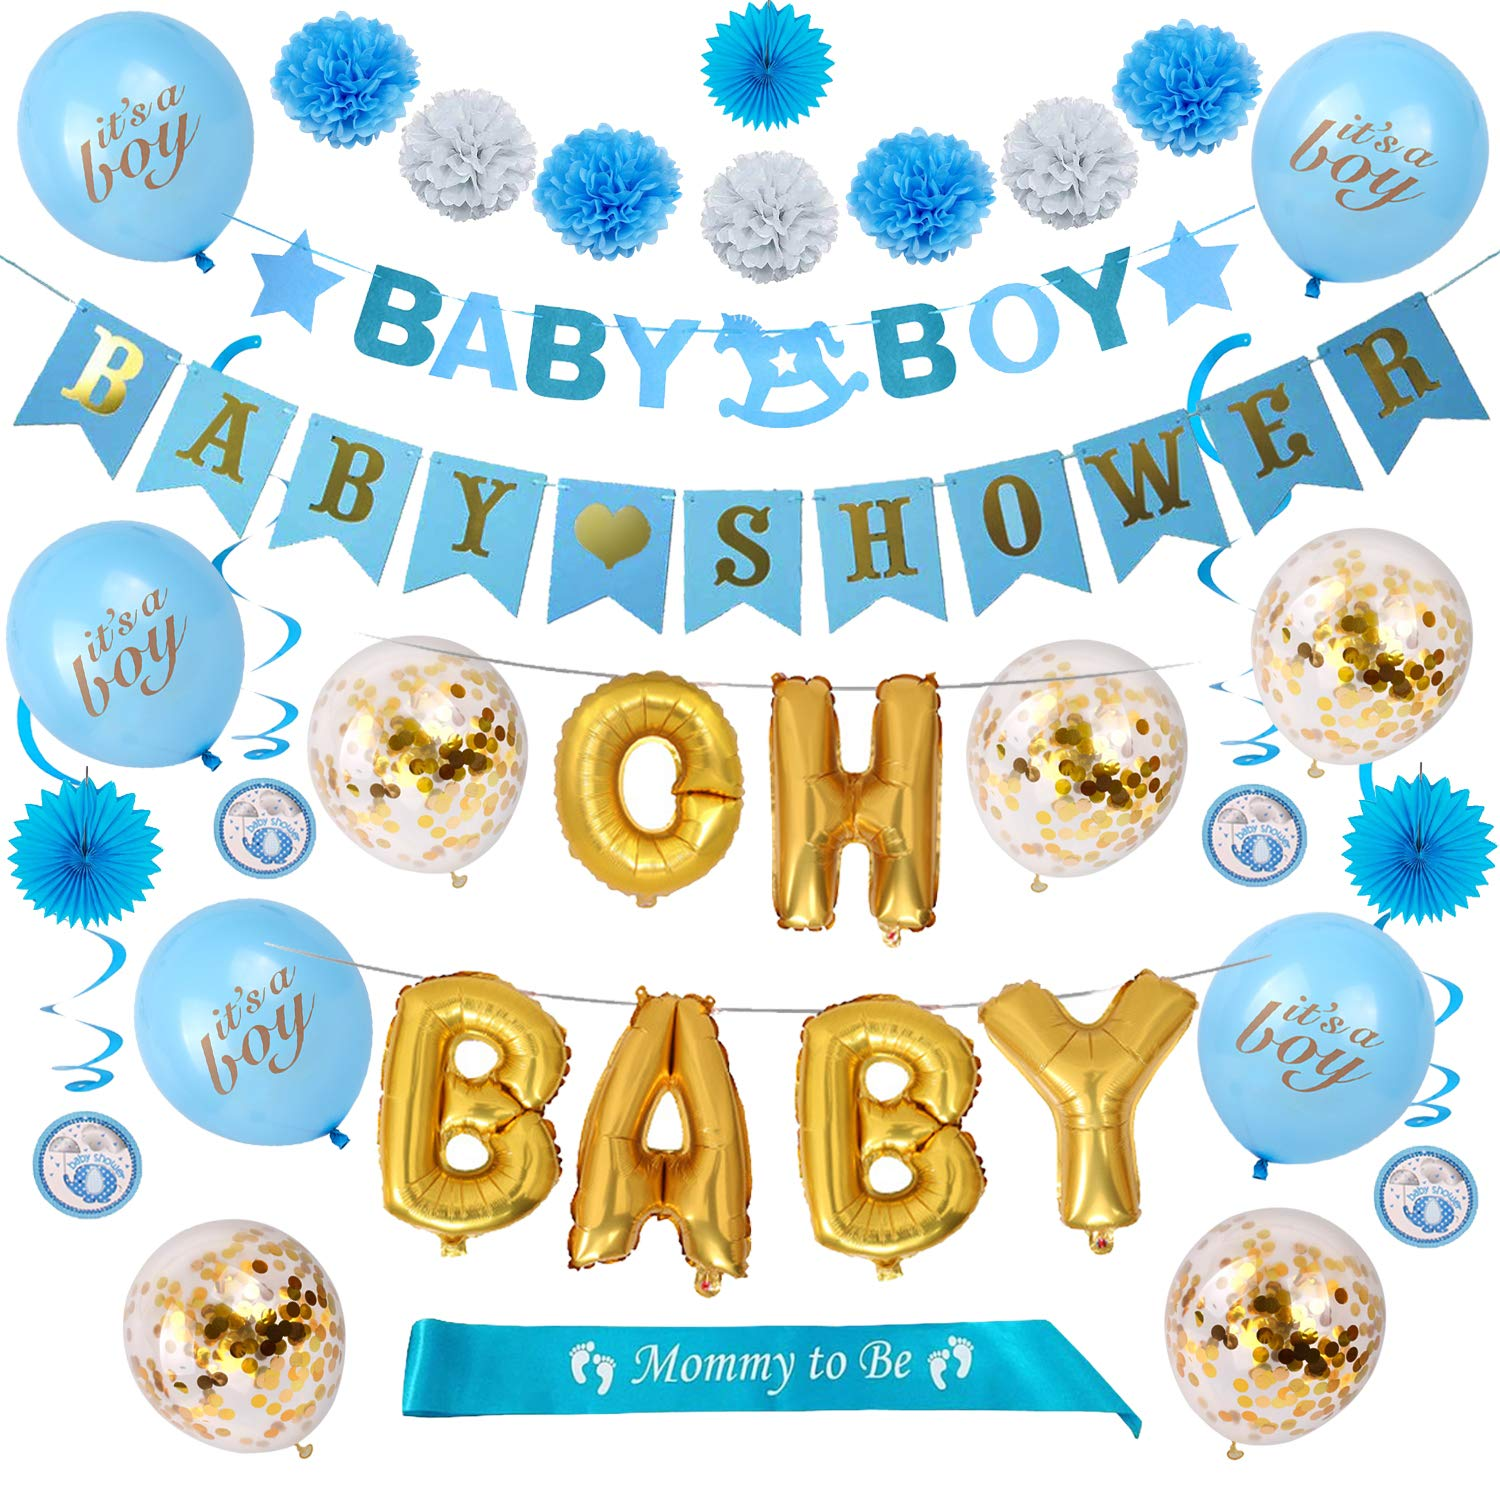 Dekority Baby Shower Decorations for Boy, Baby Shower Set with Elephant Kit, Oh Baby Foil Balloon, Baby Boy and Baby Shower Banners, It's a Boy and Confetti Balloons, Mommy to Be Sash, Tissue Paper Pom Poms and Paper Fans, Blue, White and Gold Decor by Dekority